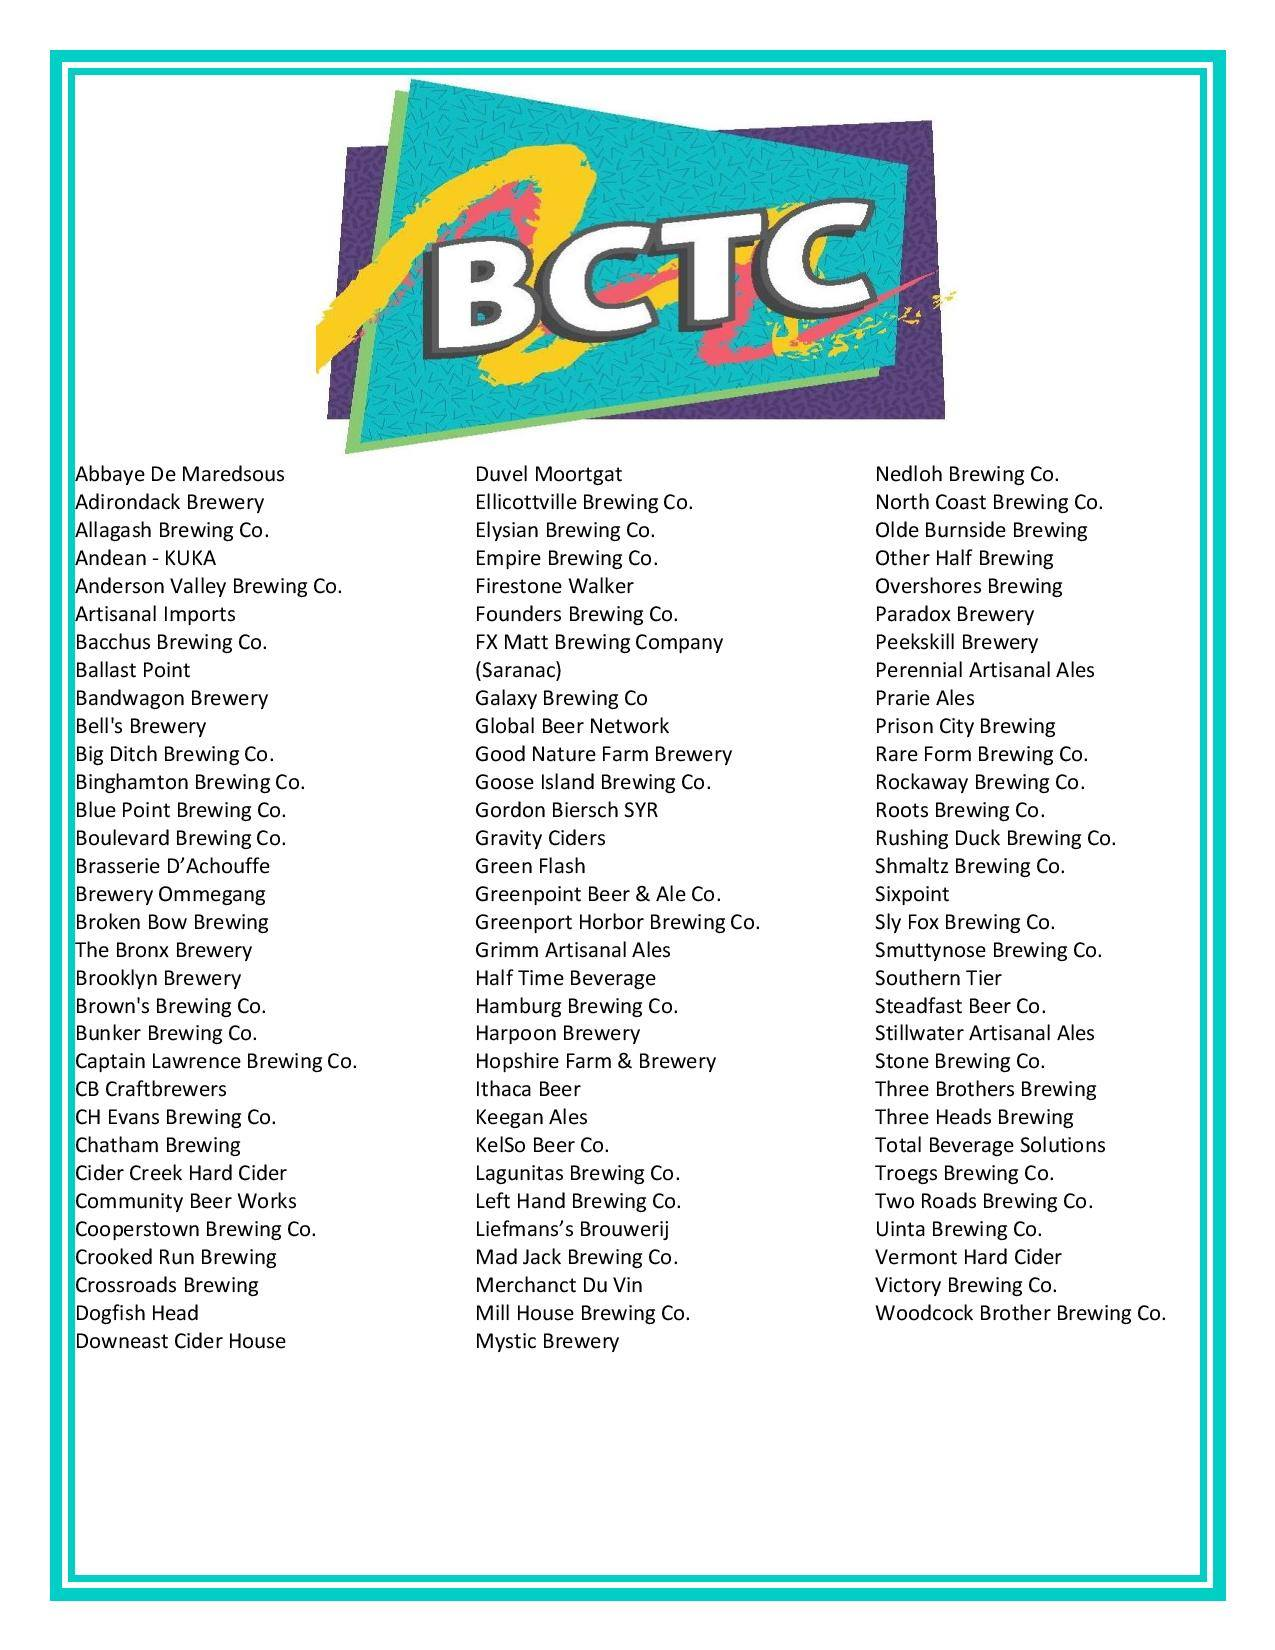 BCTC brewery list 2015 at Ommegang